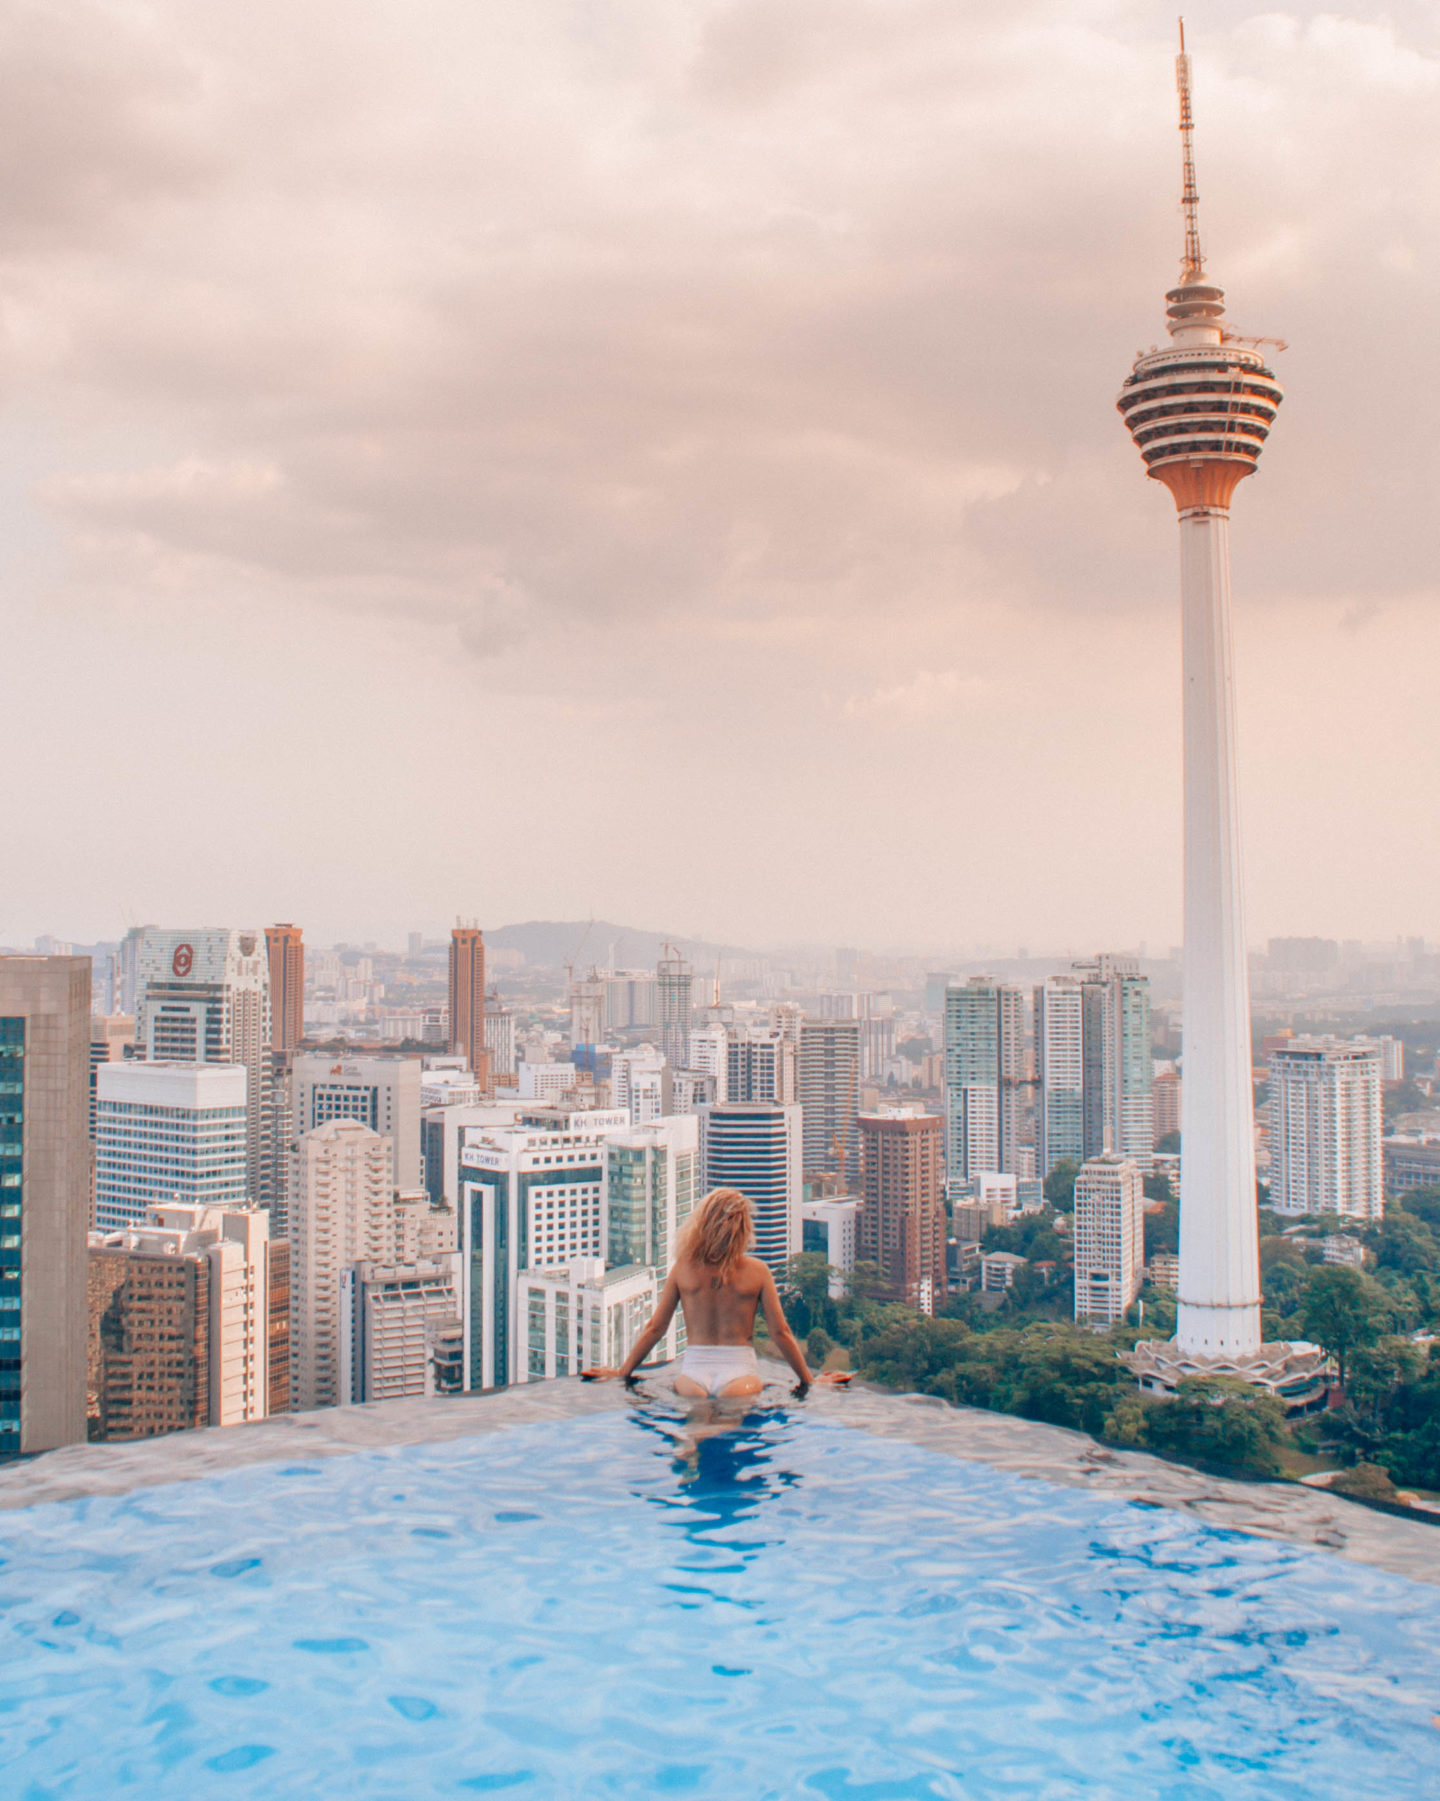 Skyline view from an hotel rooftop pool in Kuala Lumpur